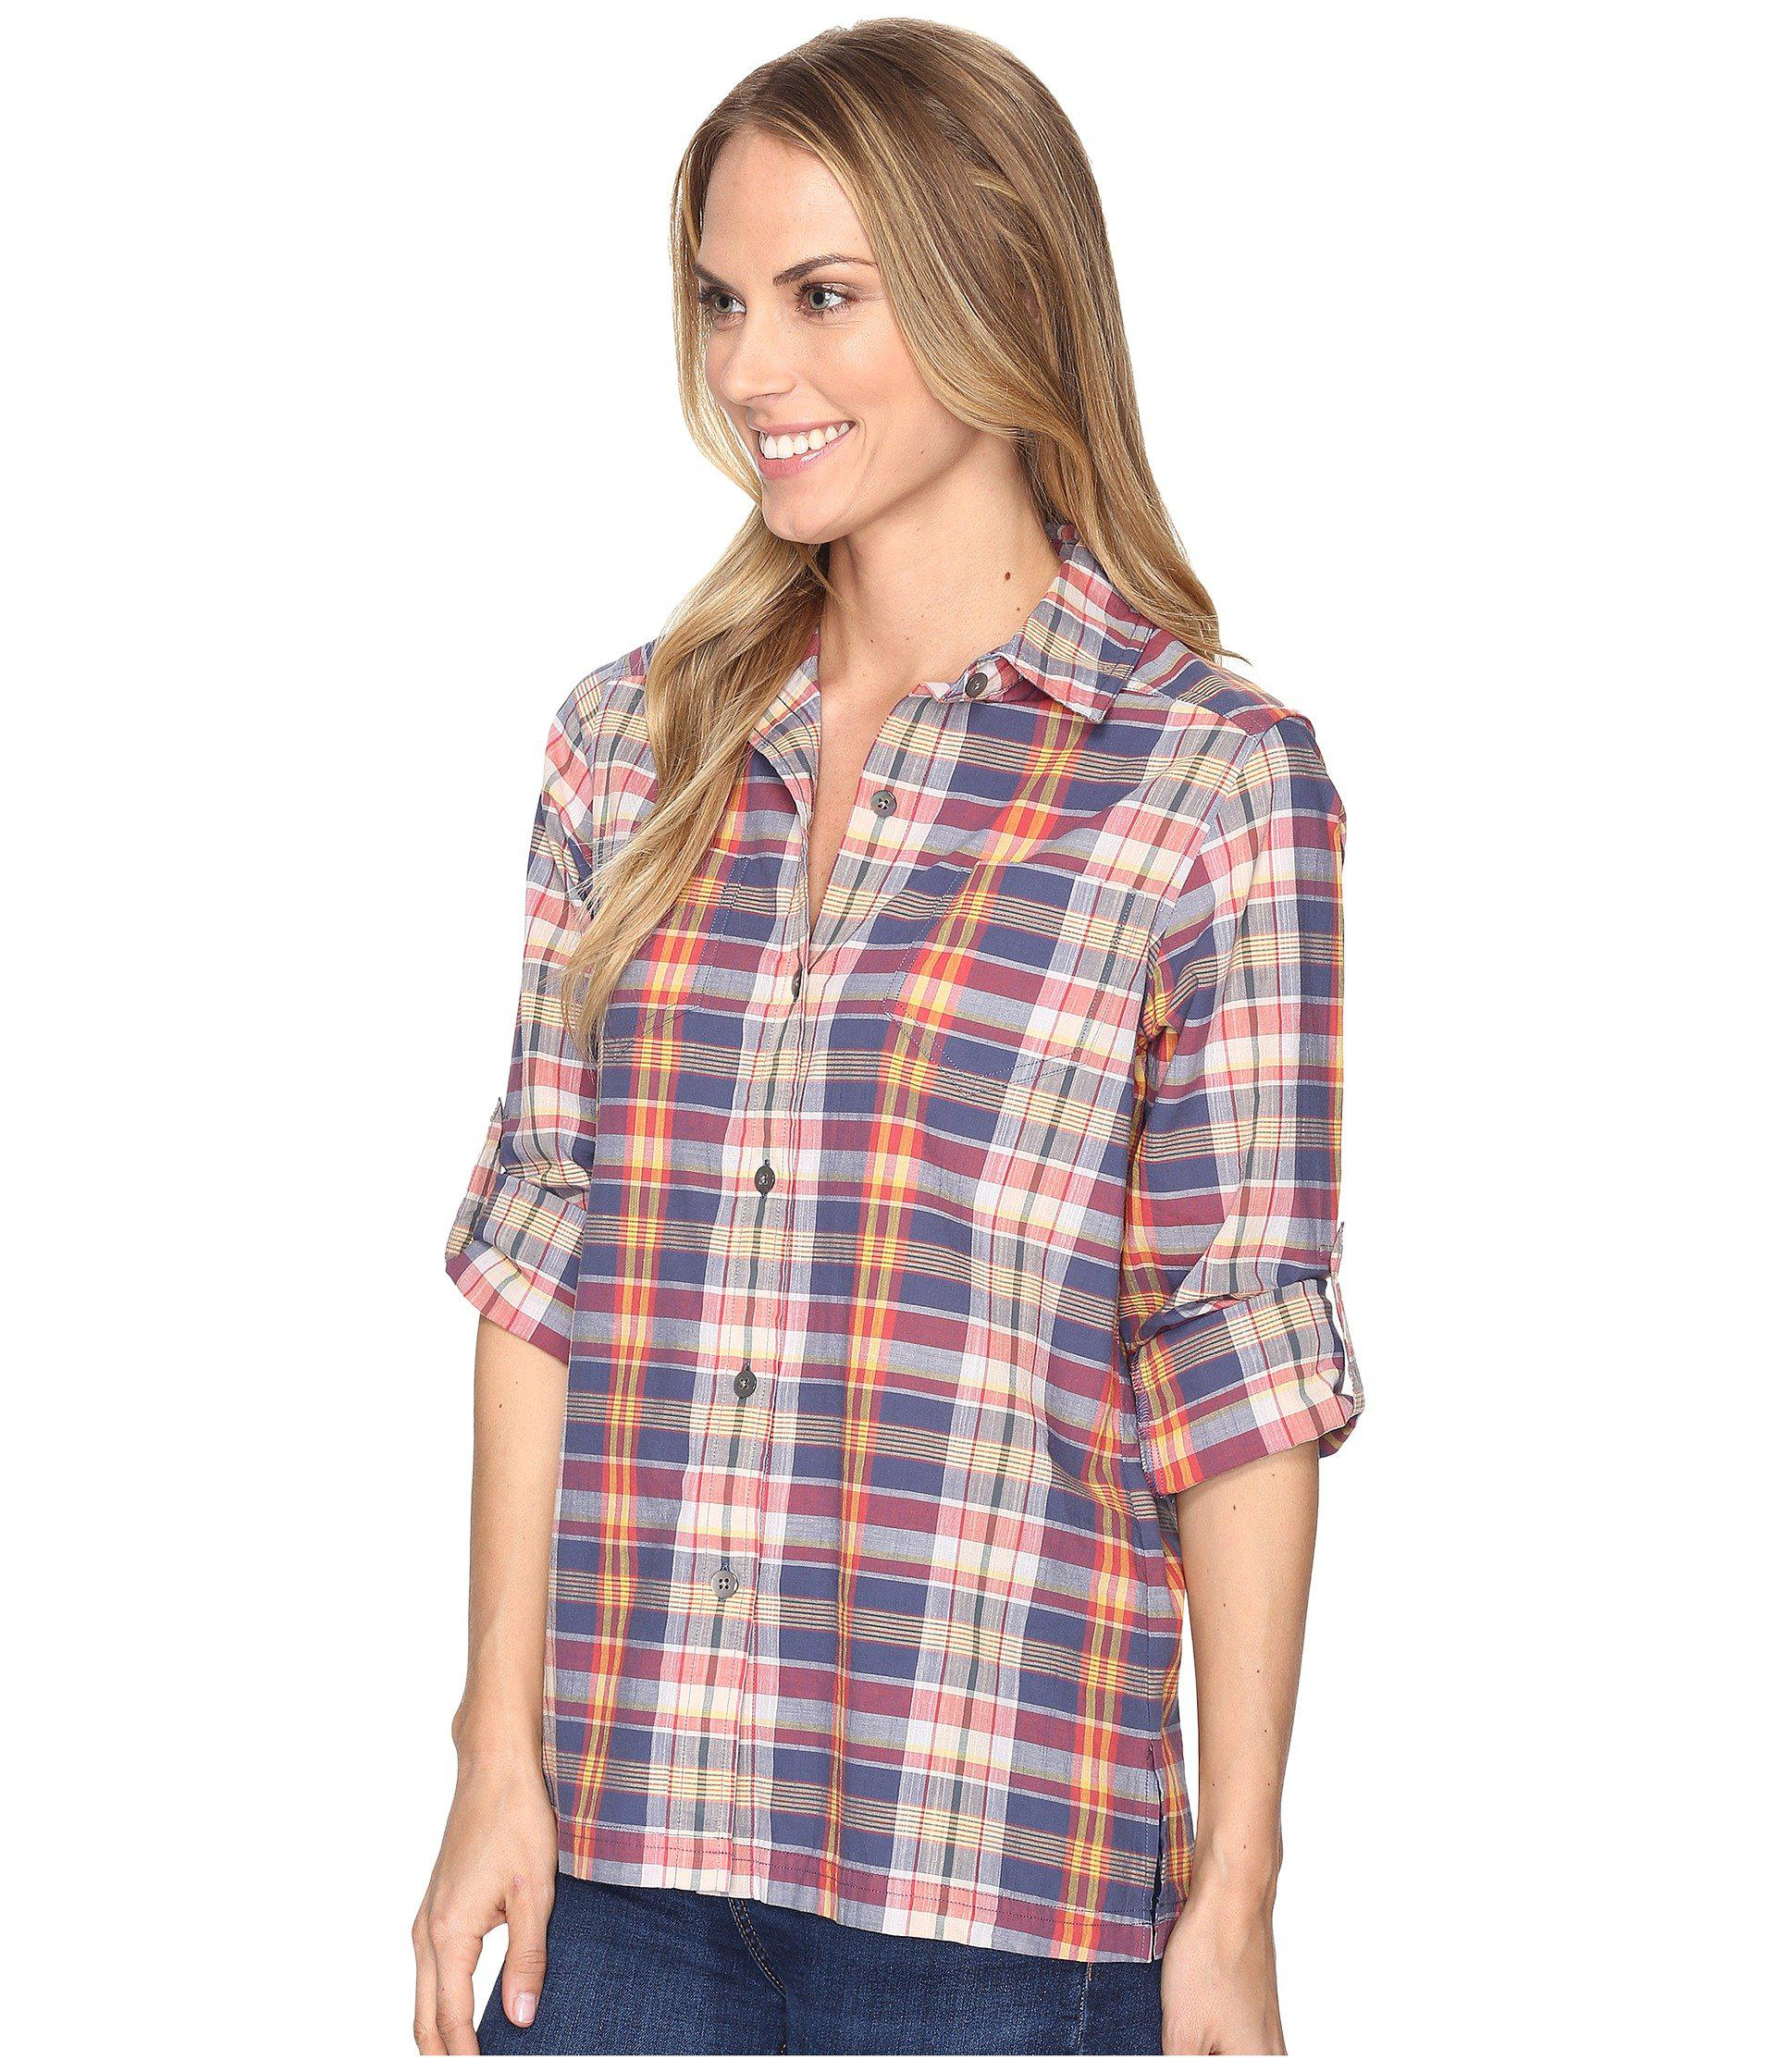 a721241a Lyst - Pendleton Astoria Plaid Shirt in Red - Save 43%